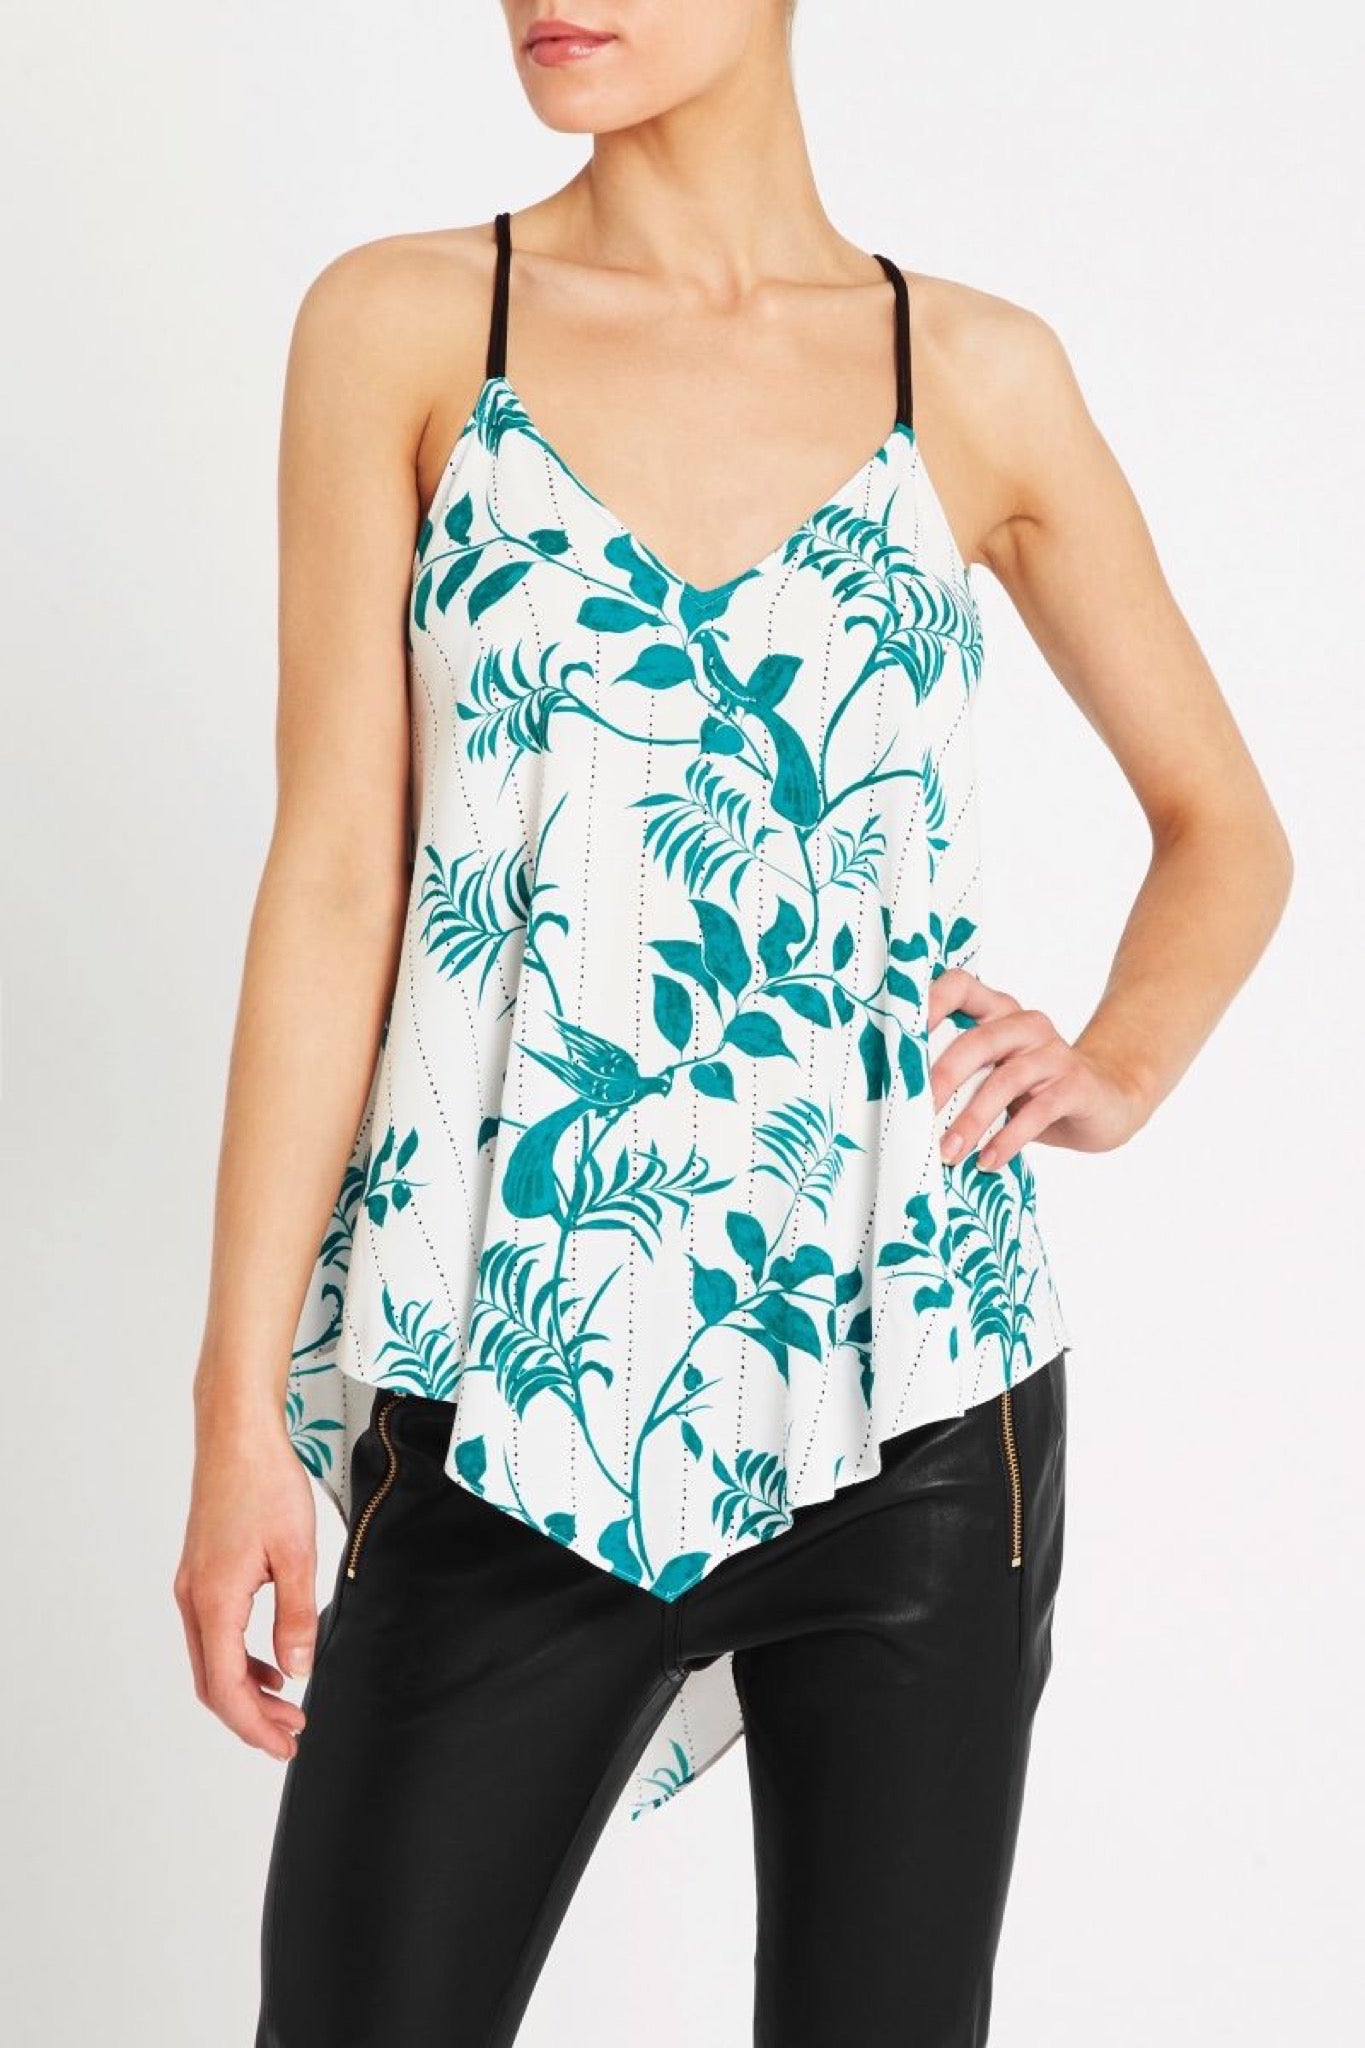 The Birdcage Top